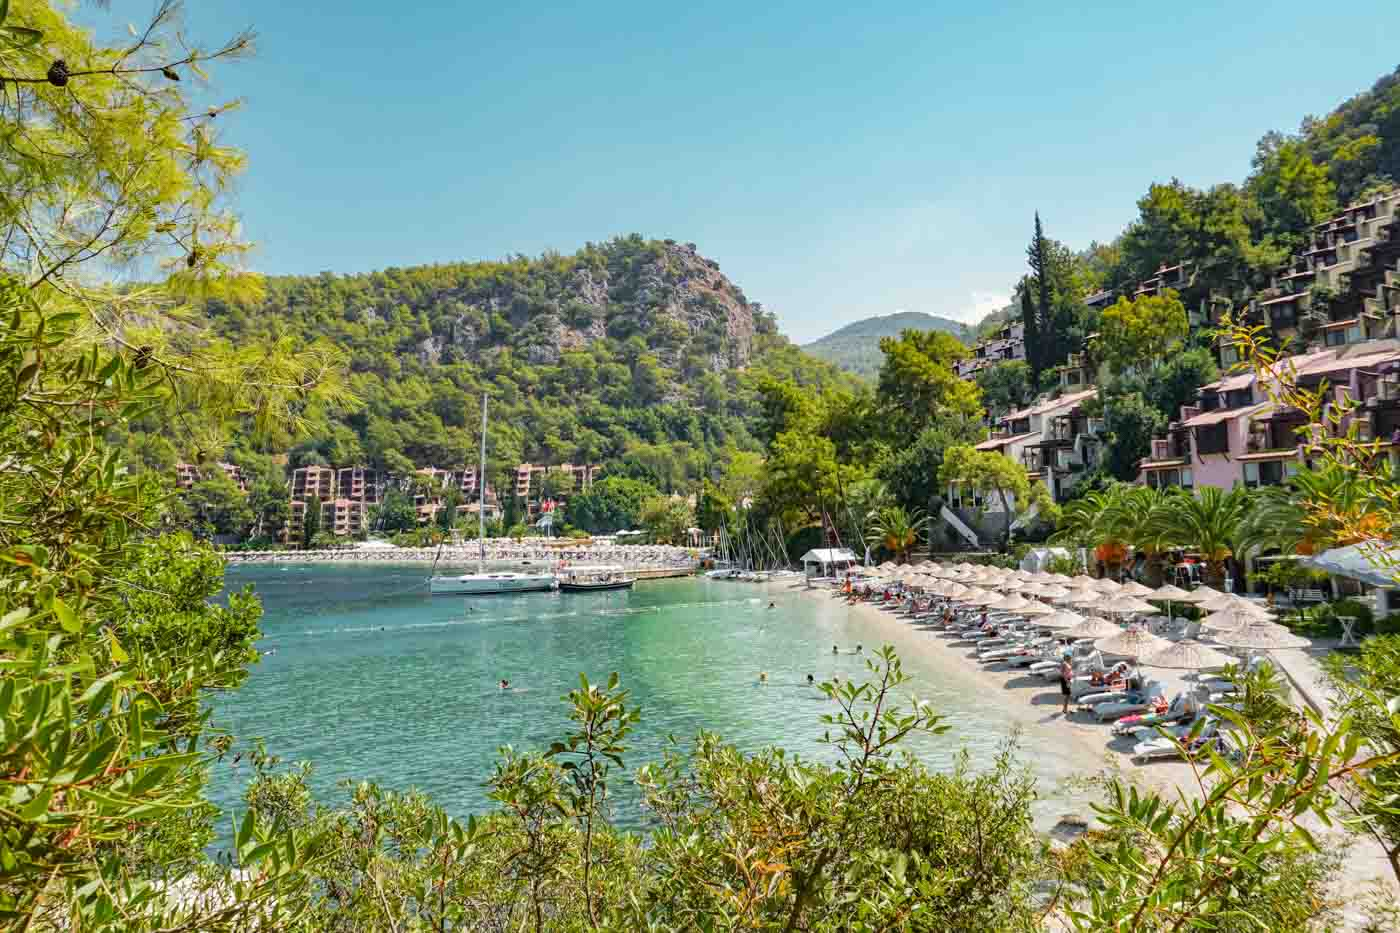 The Best Places to Go In October 2021: Fabulous Holiday Destinations for Your Next Trip